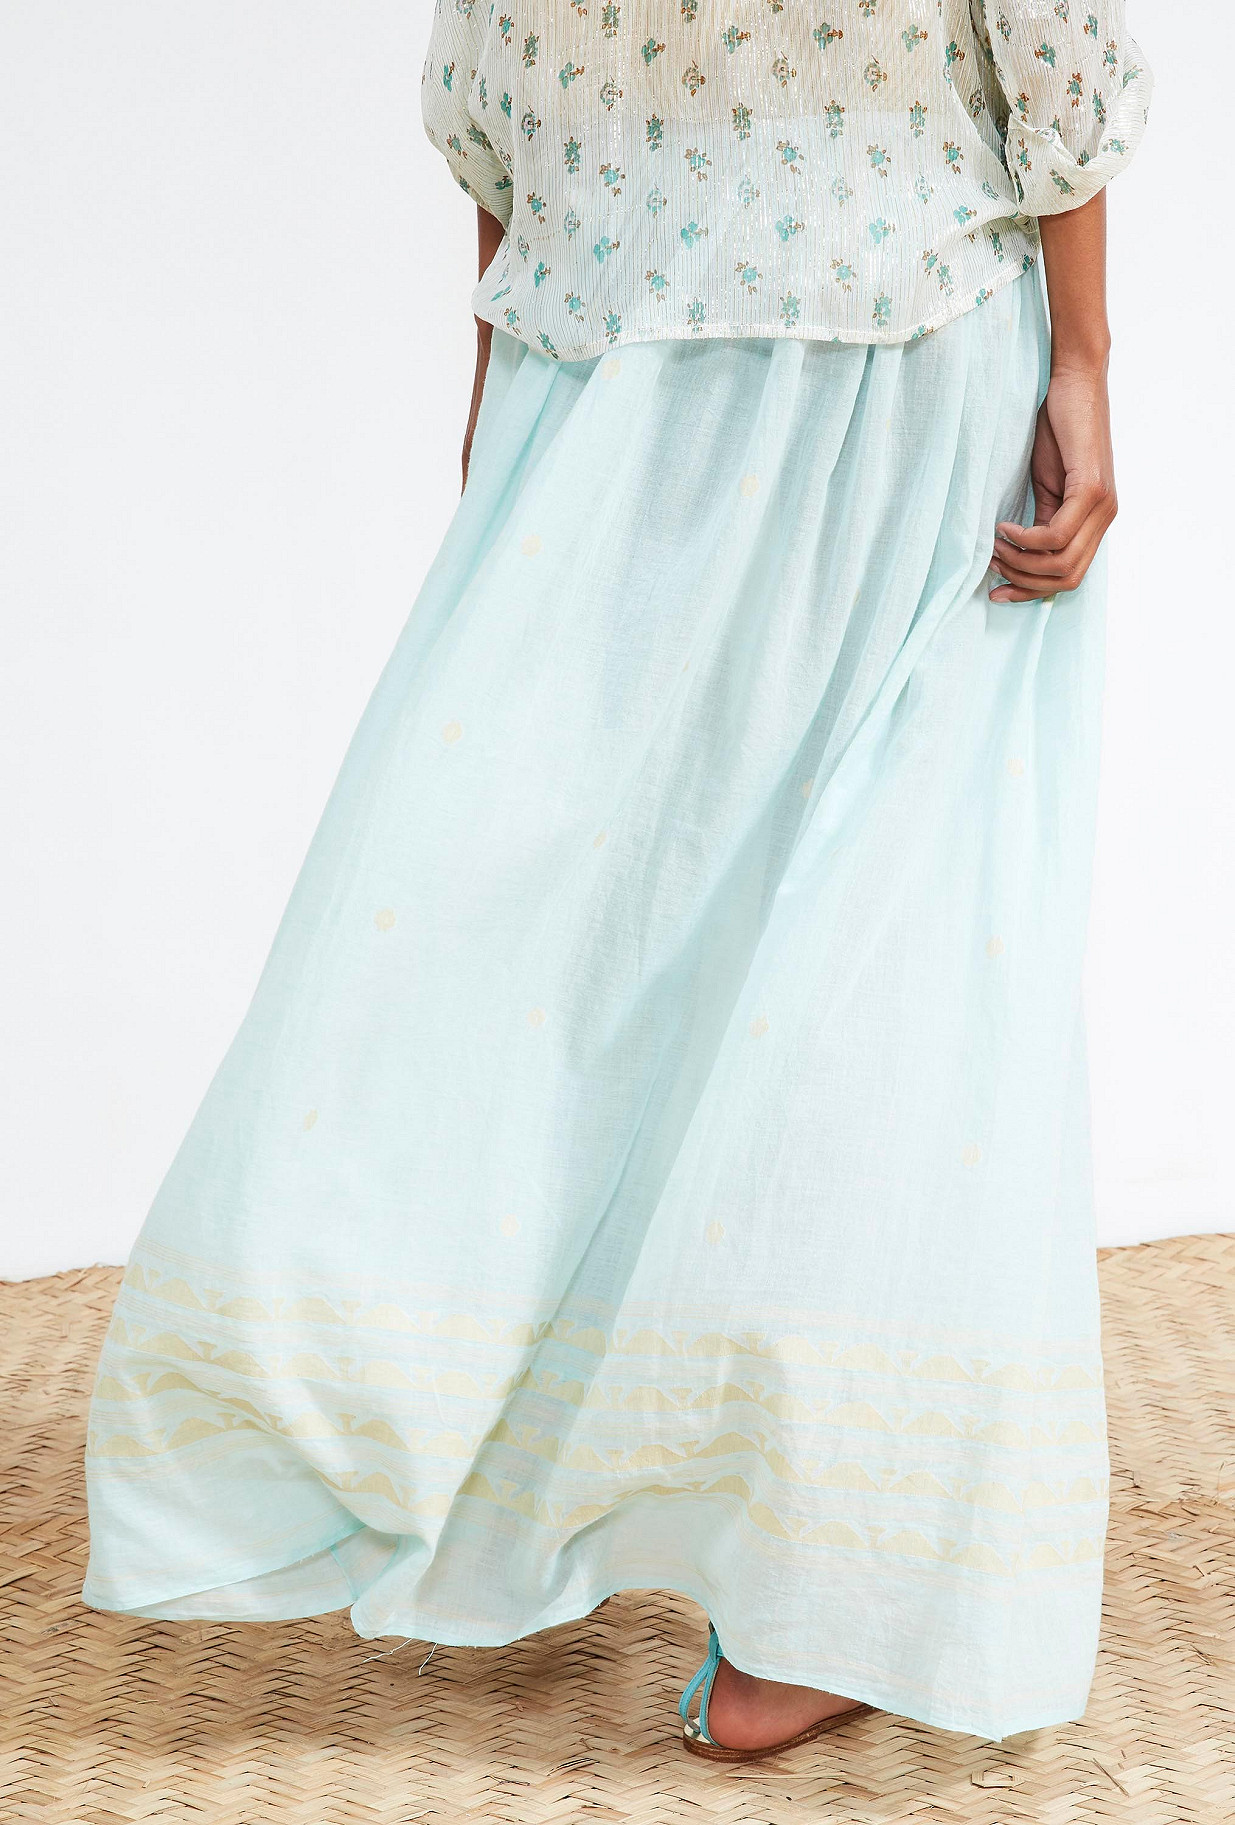 Aqua  SKIRT  Tahiti Mes demoiselles fashion clothes designer Paris